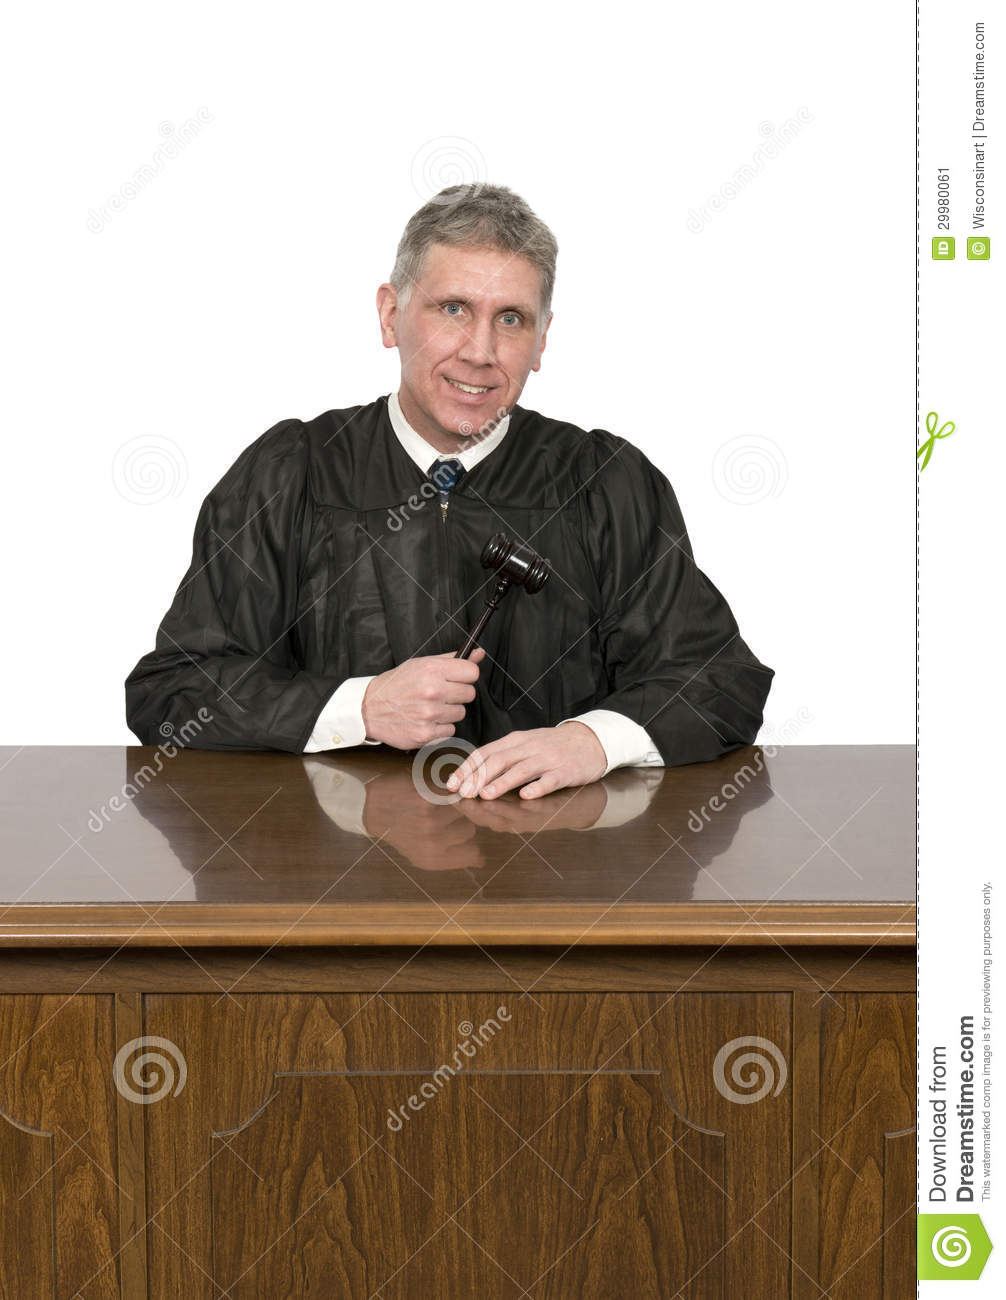 529 Judge Bench Photos Free Royalty Free Stock Photos From Dreamstime